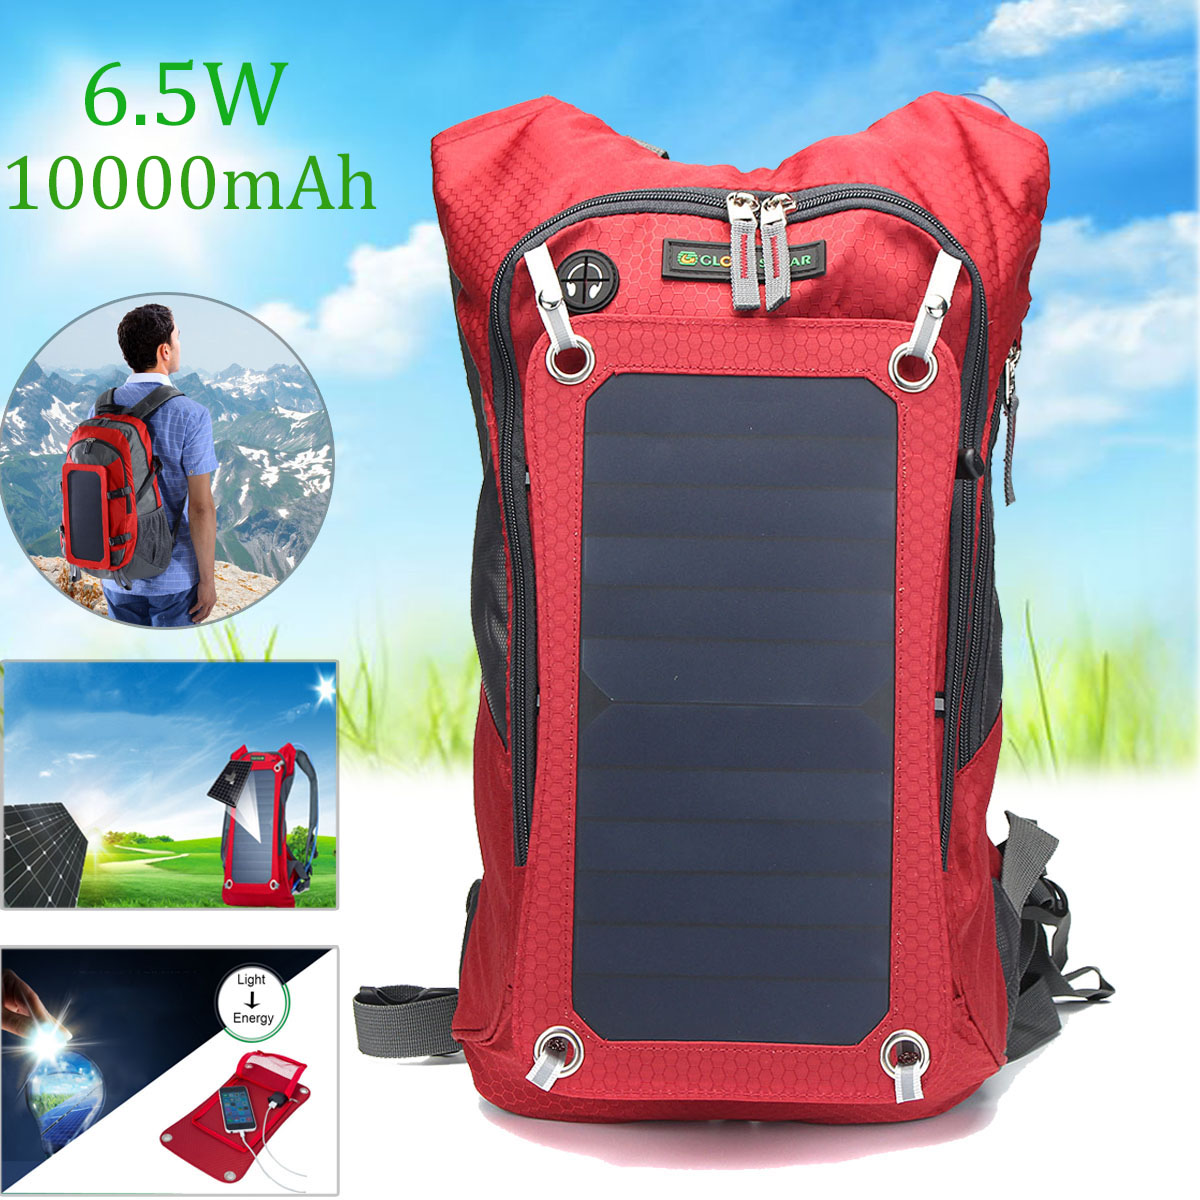 Outdoor Travel Bag 6.5W Solar Panel USB Powered Detacha